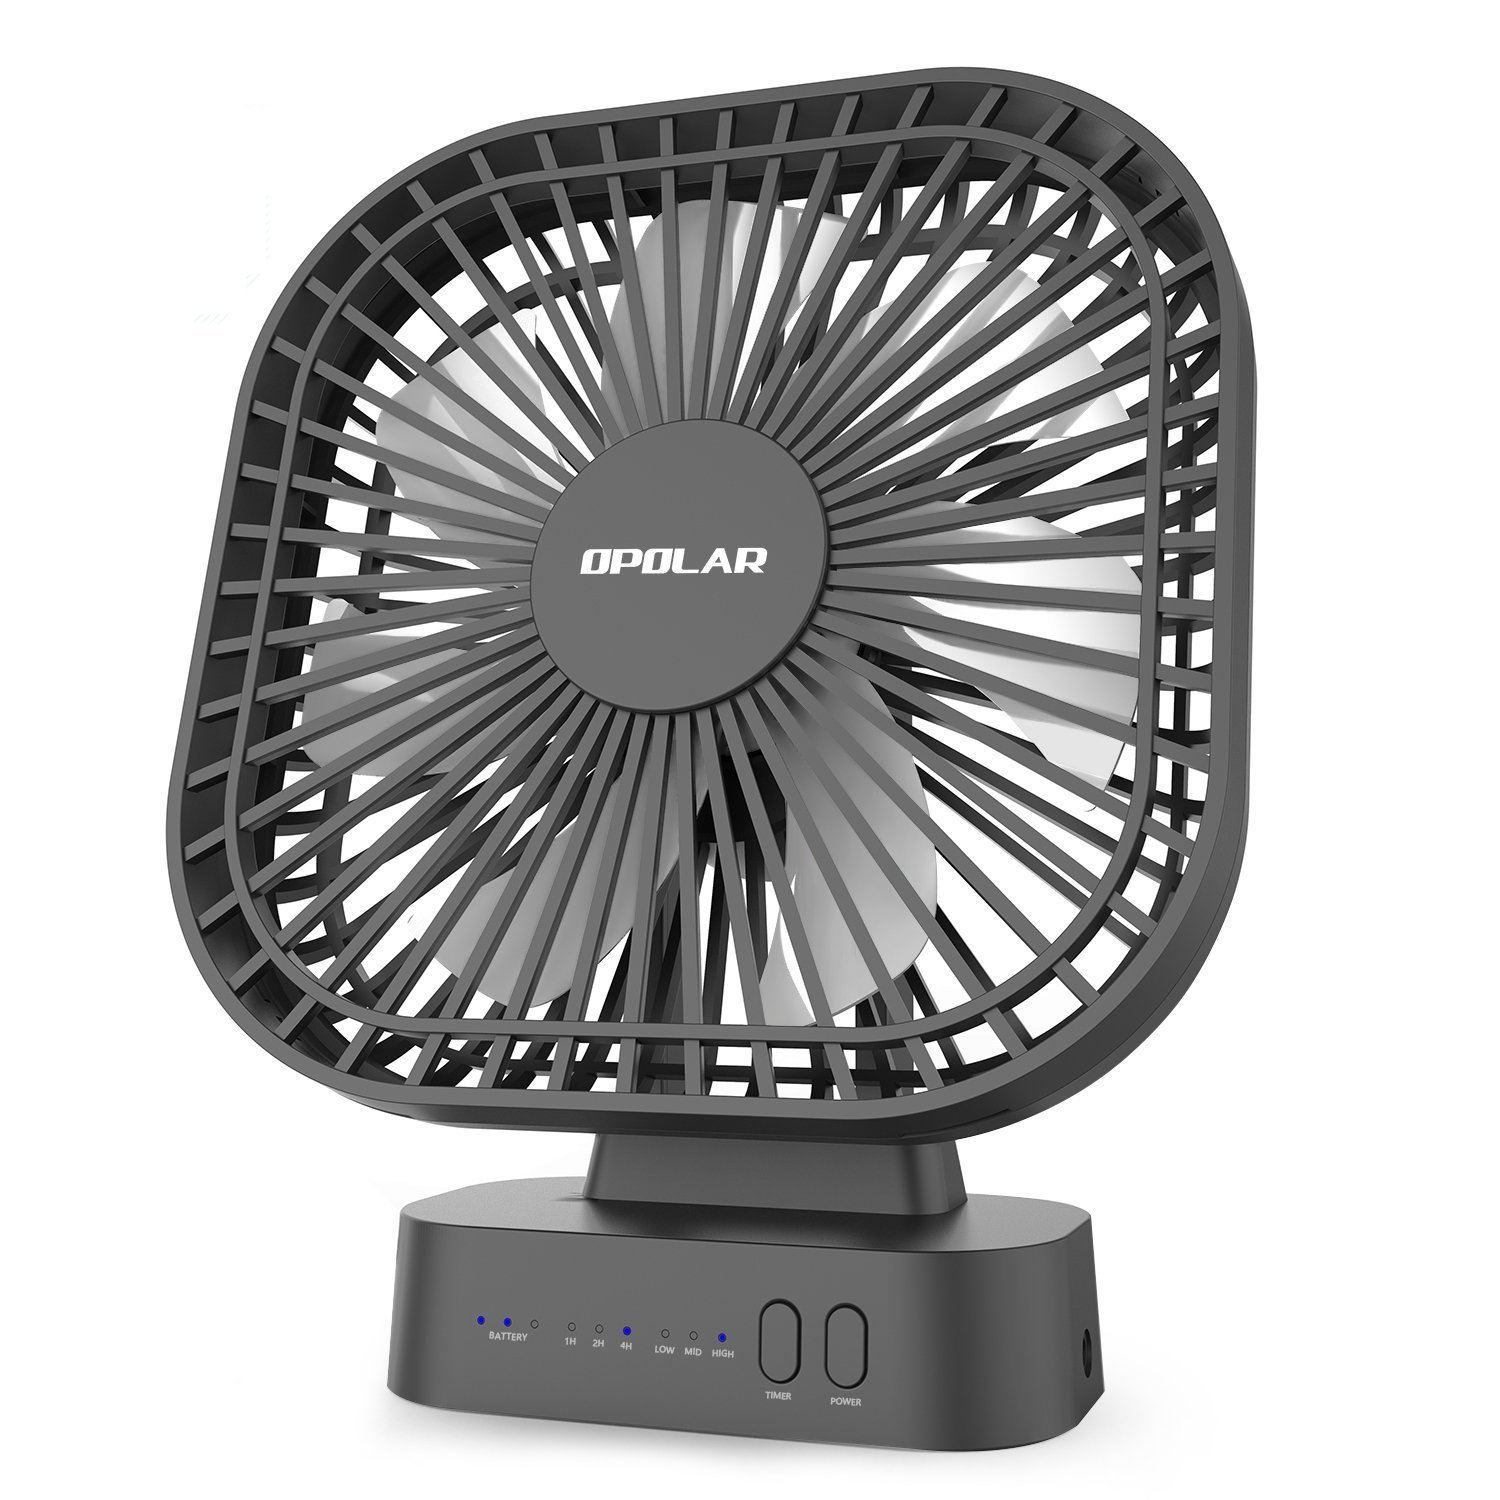 OPOLAR Battery Operated Fan, 5200mA Rechargeable Battery Powered Fan, Strong Wind but Quiet, Timer Setting, USB or Battery Powered for Office or Outdoor, Small Mini Personal Desk Fan 4335397927